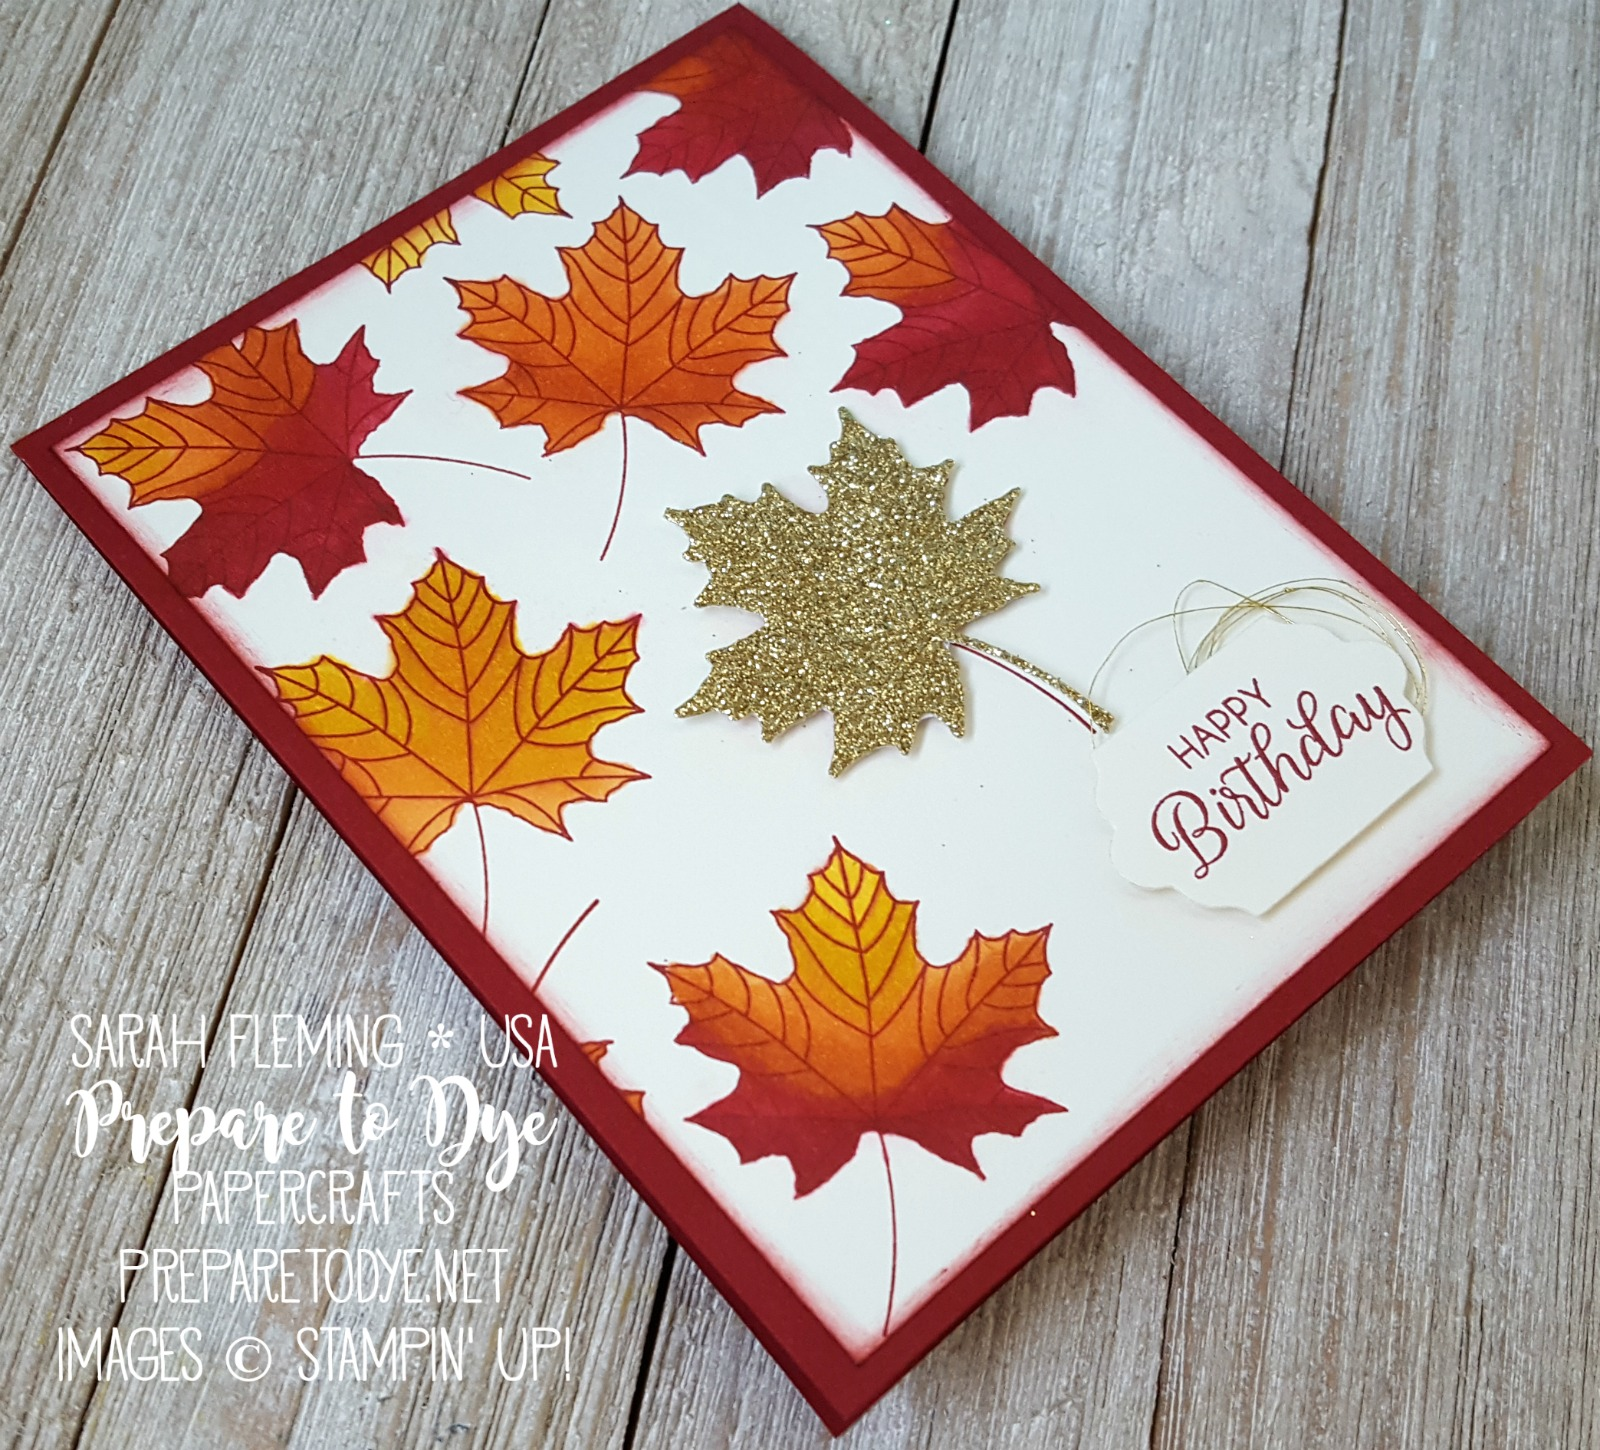 Stampin' Up! Colorful Seasons bundle with Seasonal Layers framelits and Stampin' Blends alcohol markers , Beautiful Bouquet - autumn fall handmade birthday card - Sarah Fleming - Prepare to Dye Papercrafts